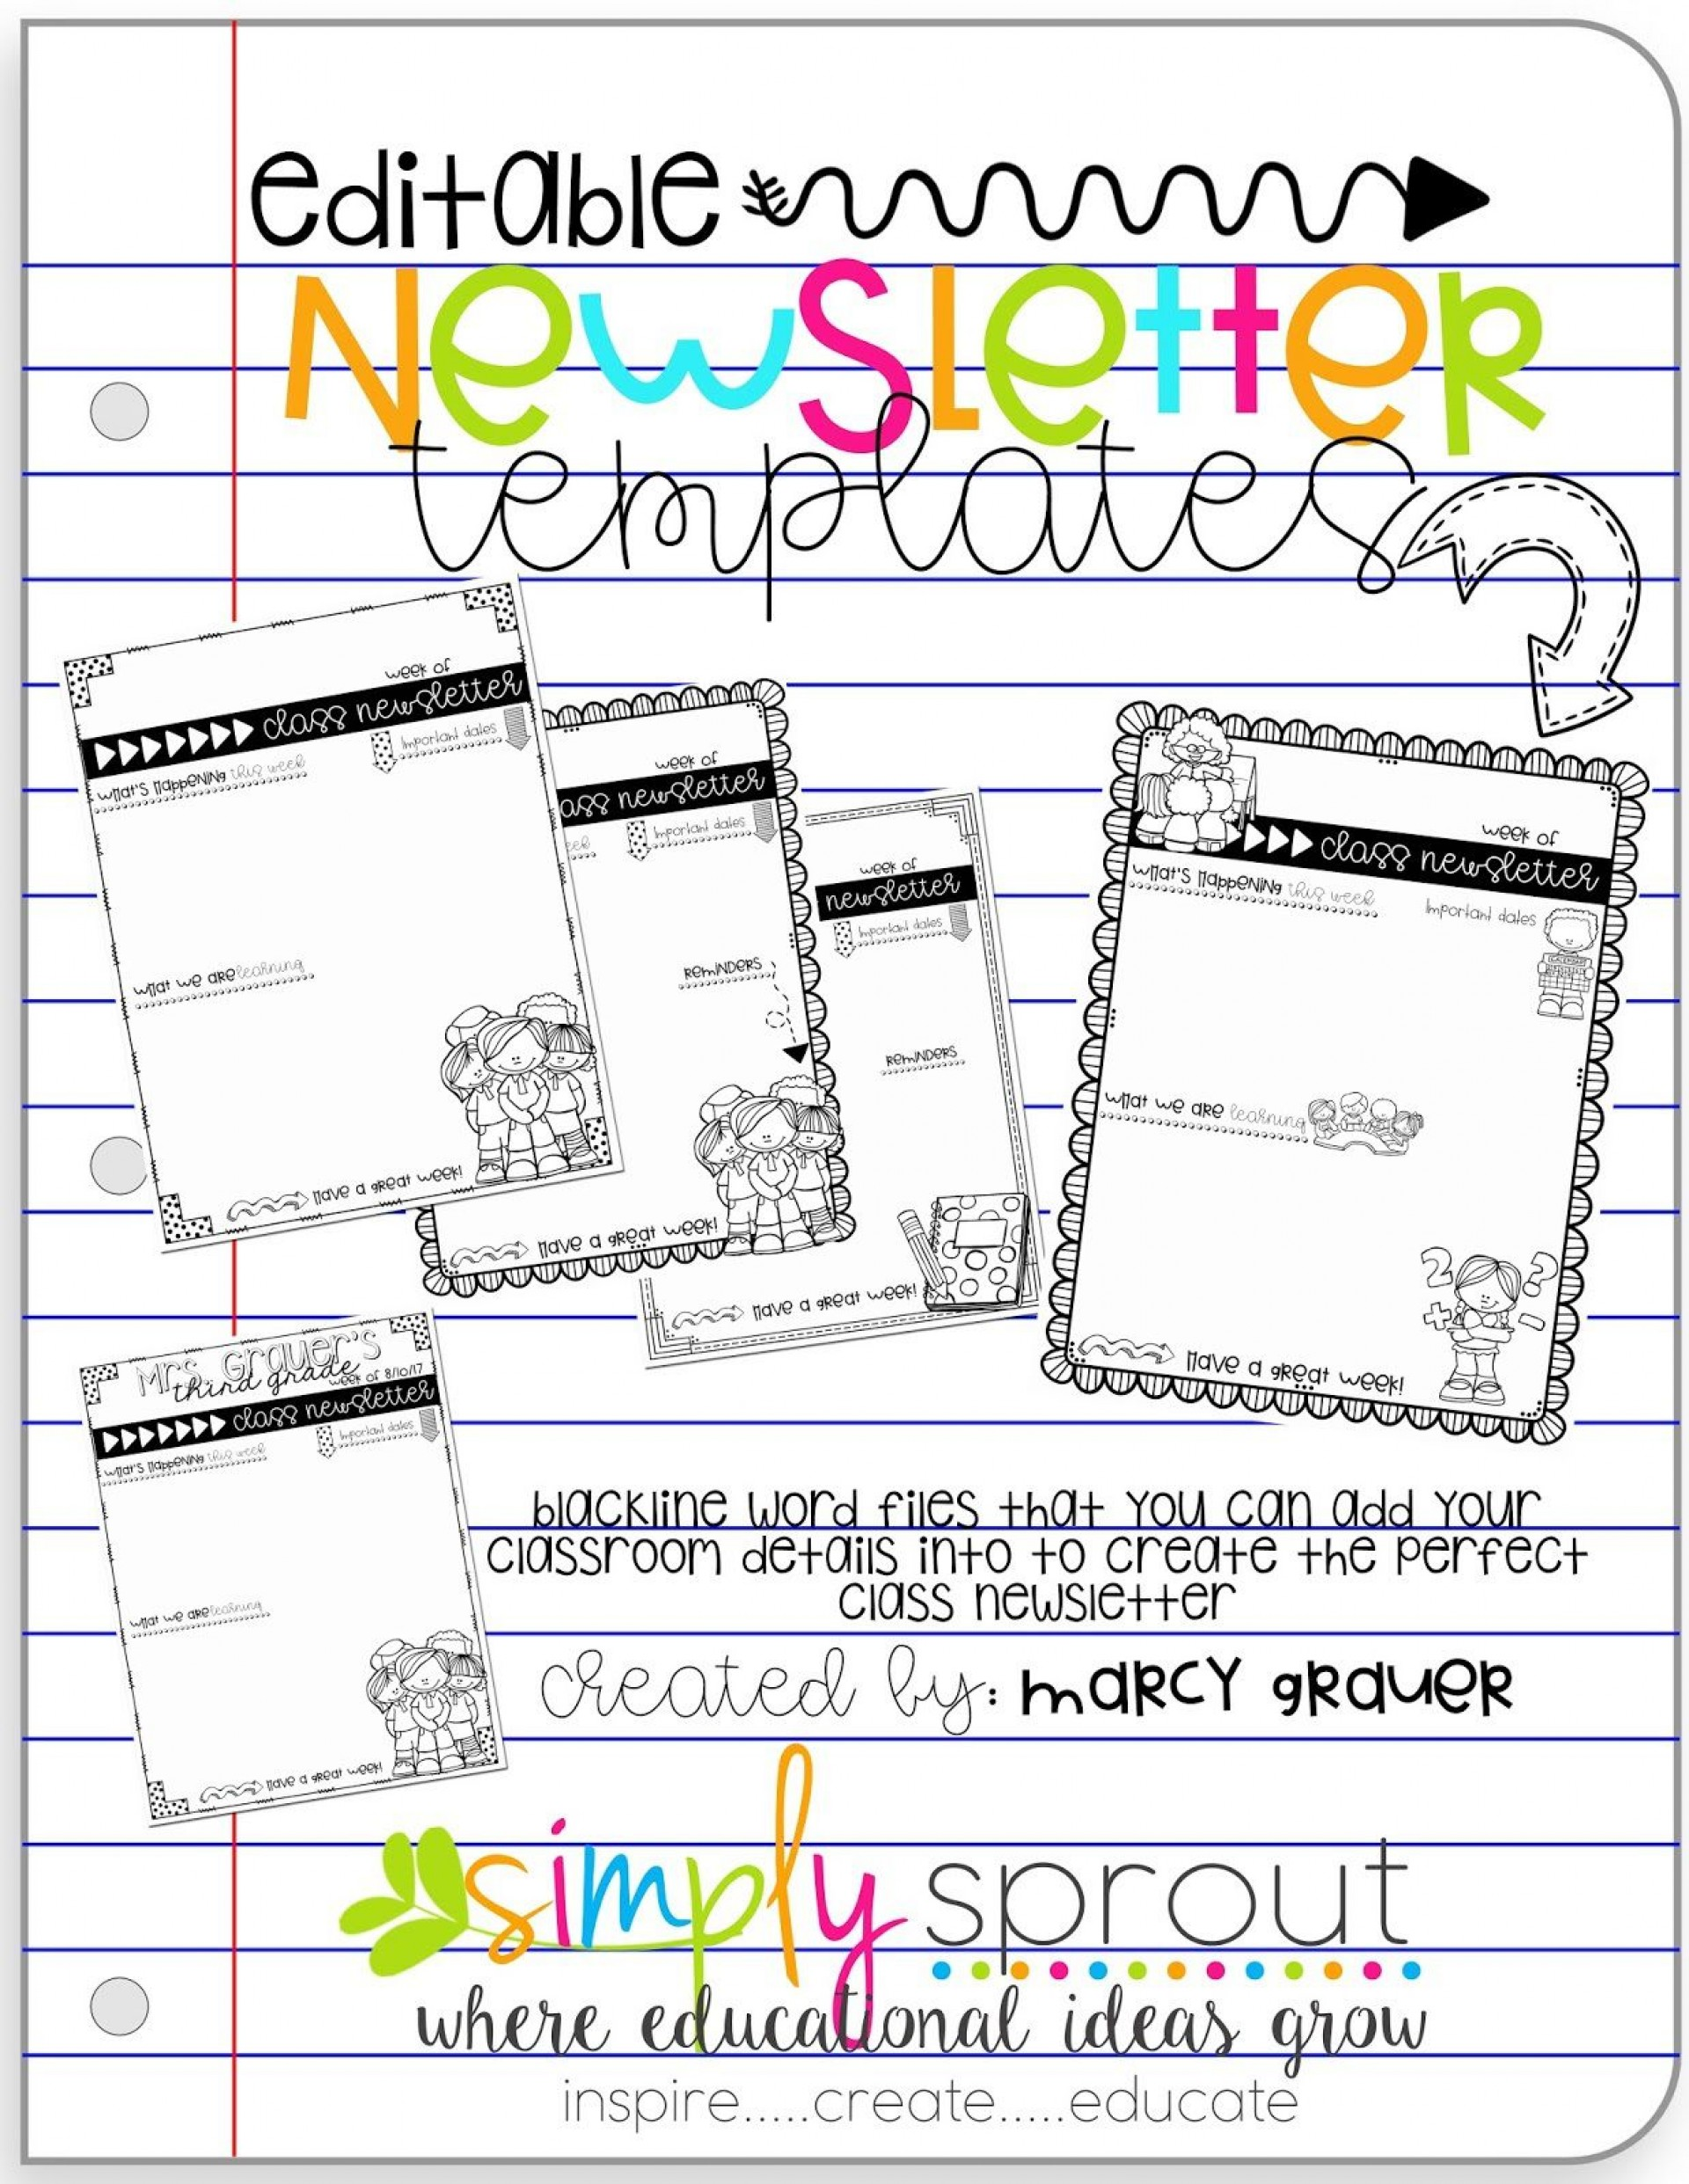 009 Astounding School Newsletter Template Free Image  Publisher Editable Counselor1920